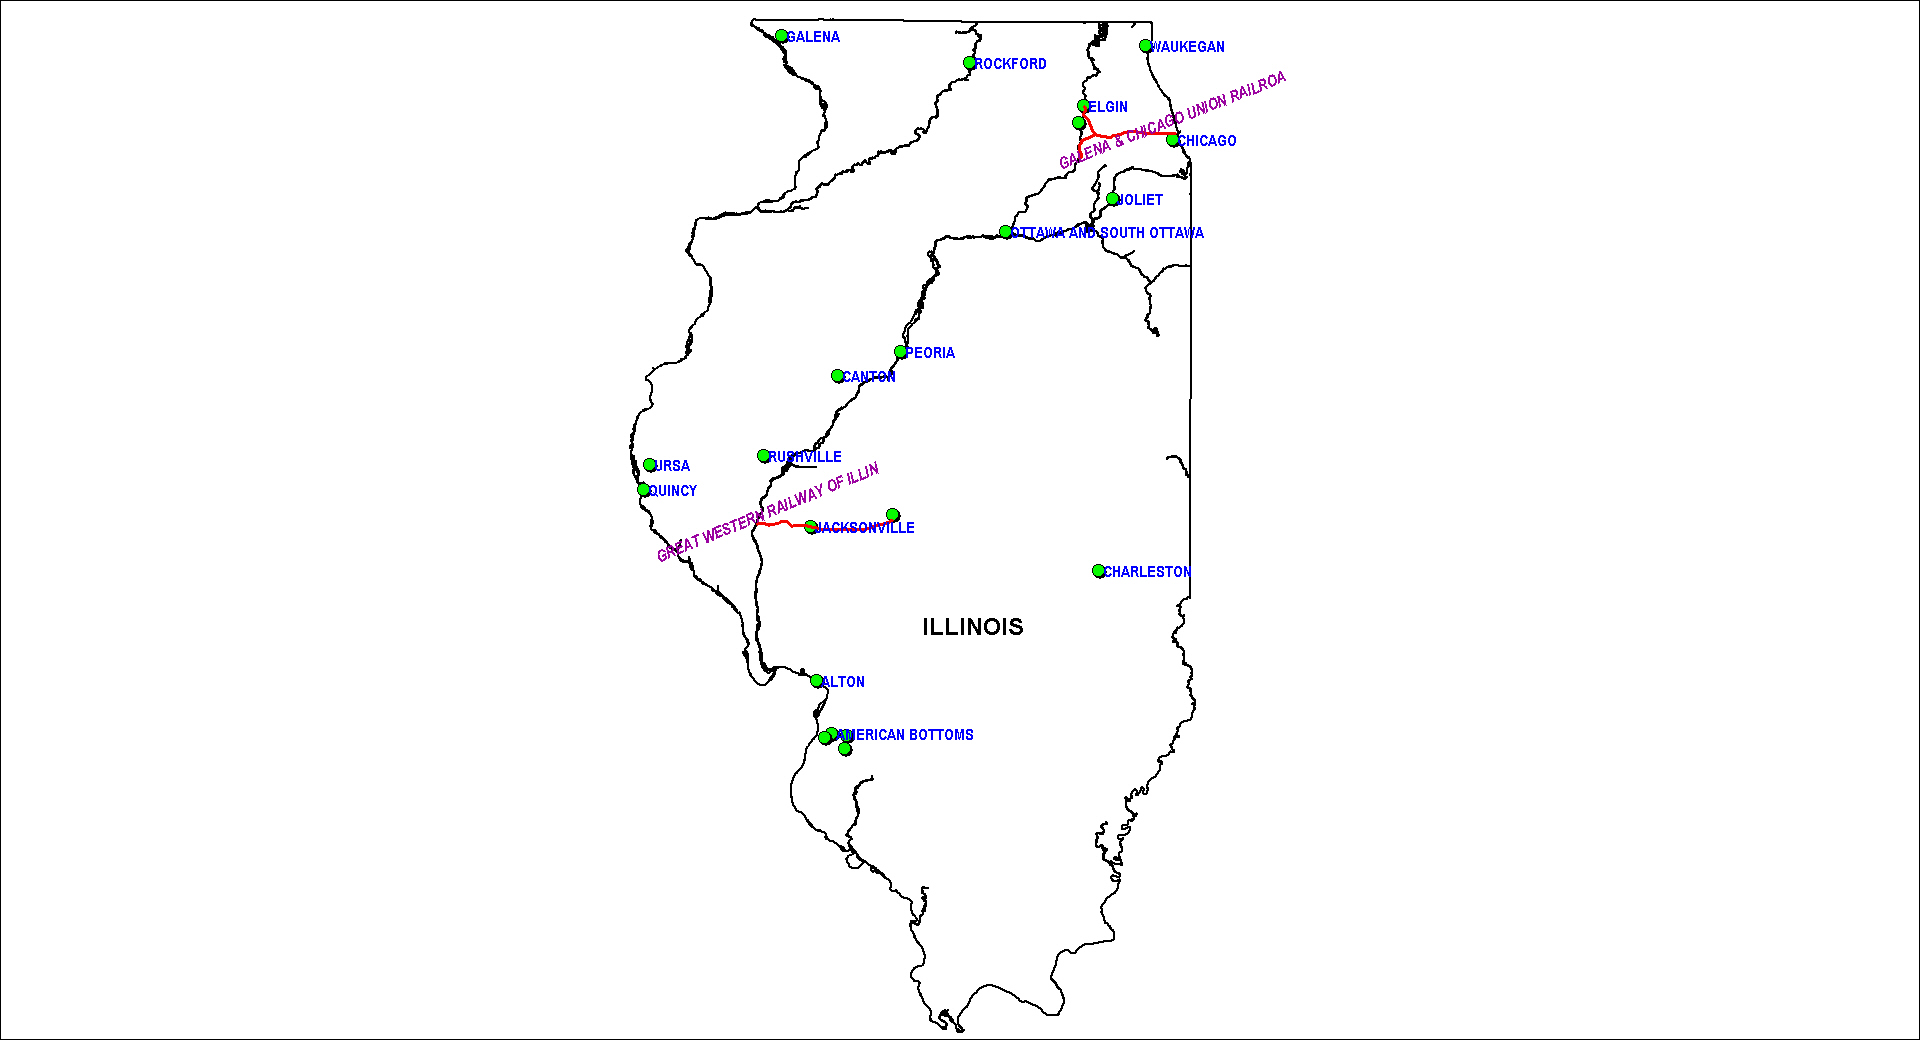 Illinois Railroad Map as of 1850